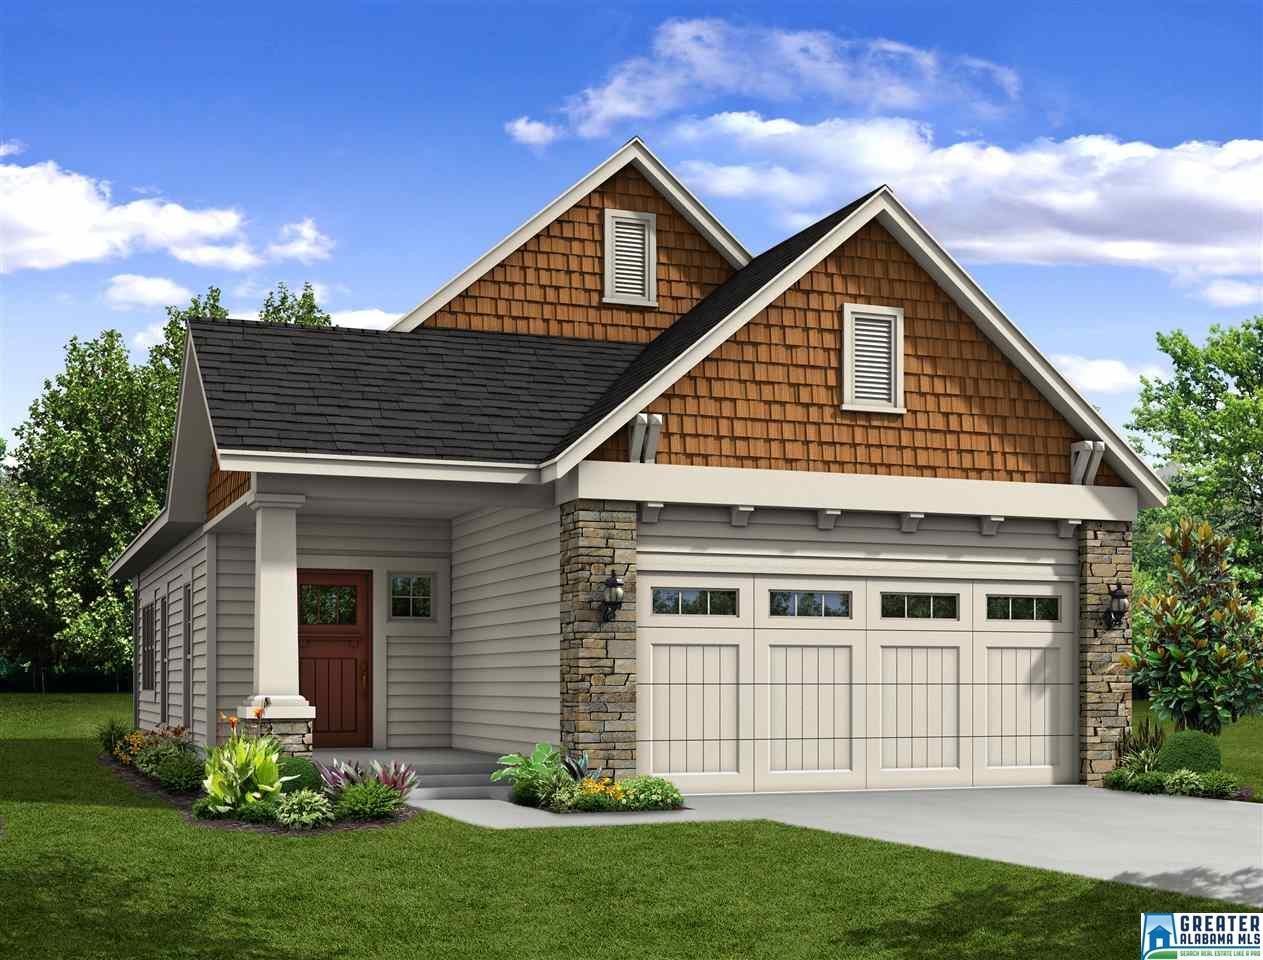 Grants Mill Valley - New homes in Irondale 816156